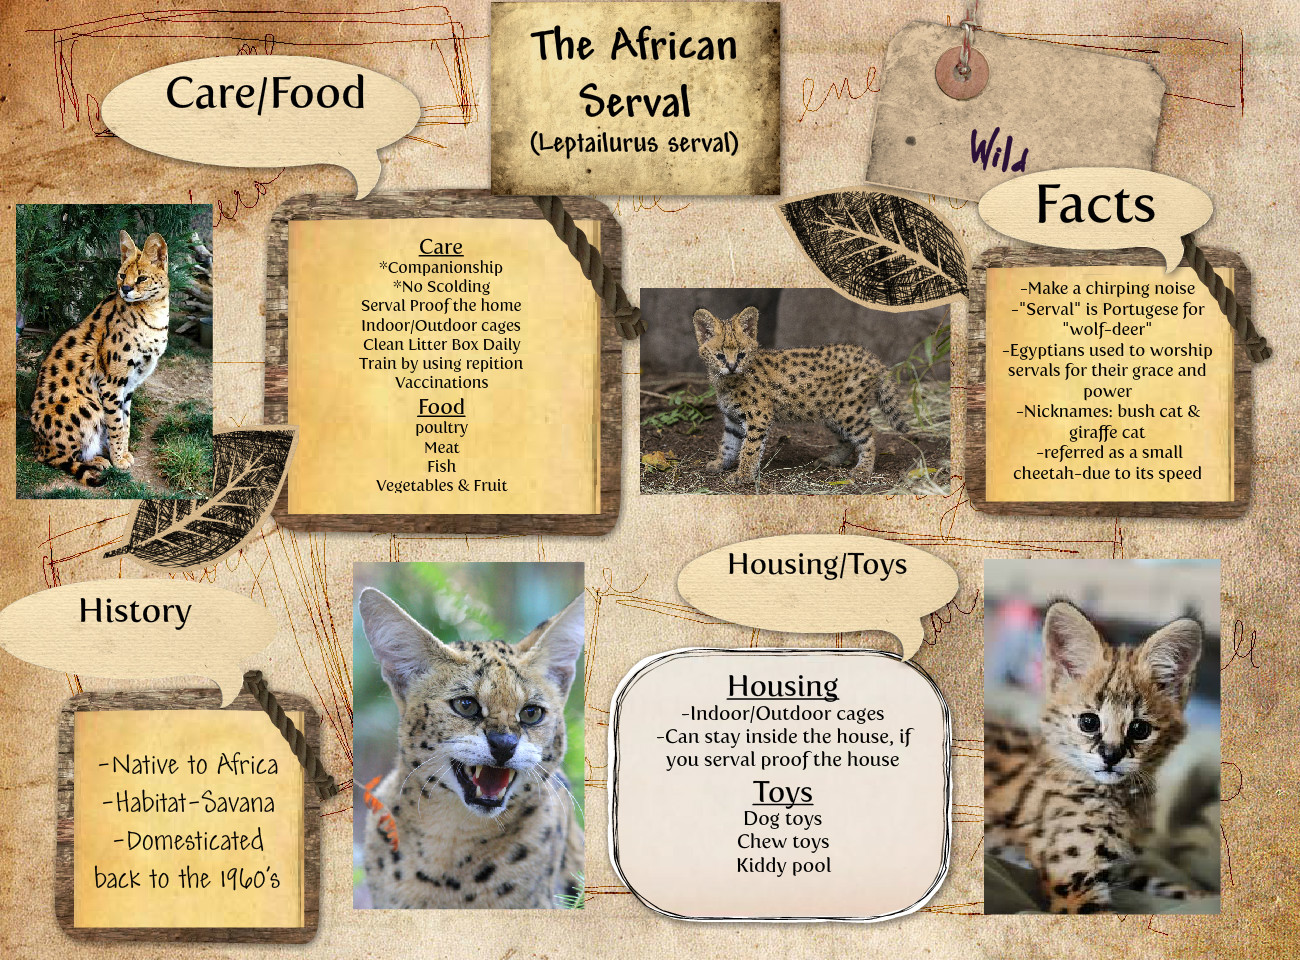 The African Serval